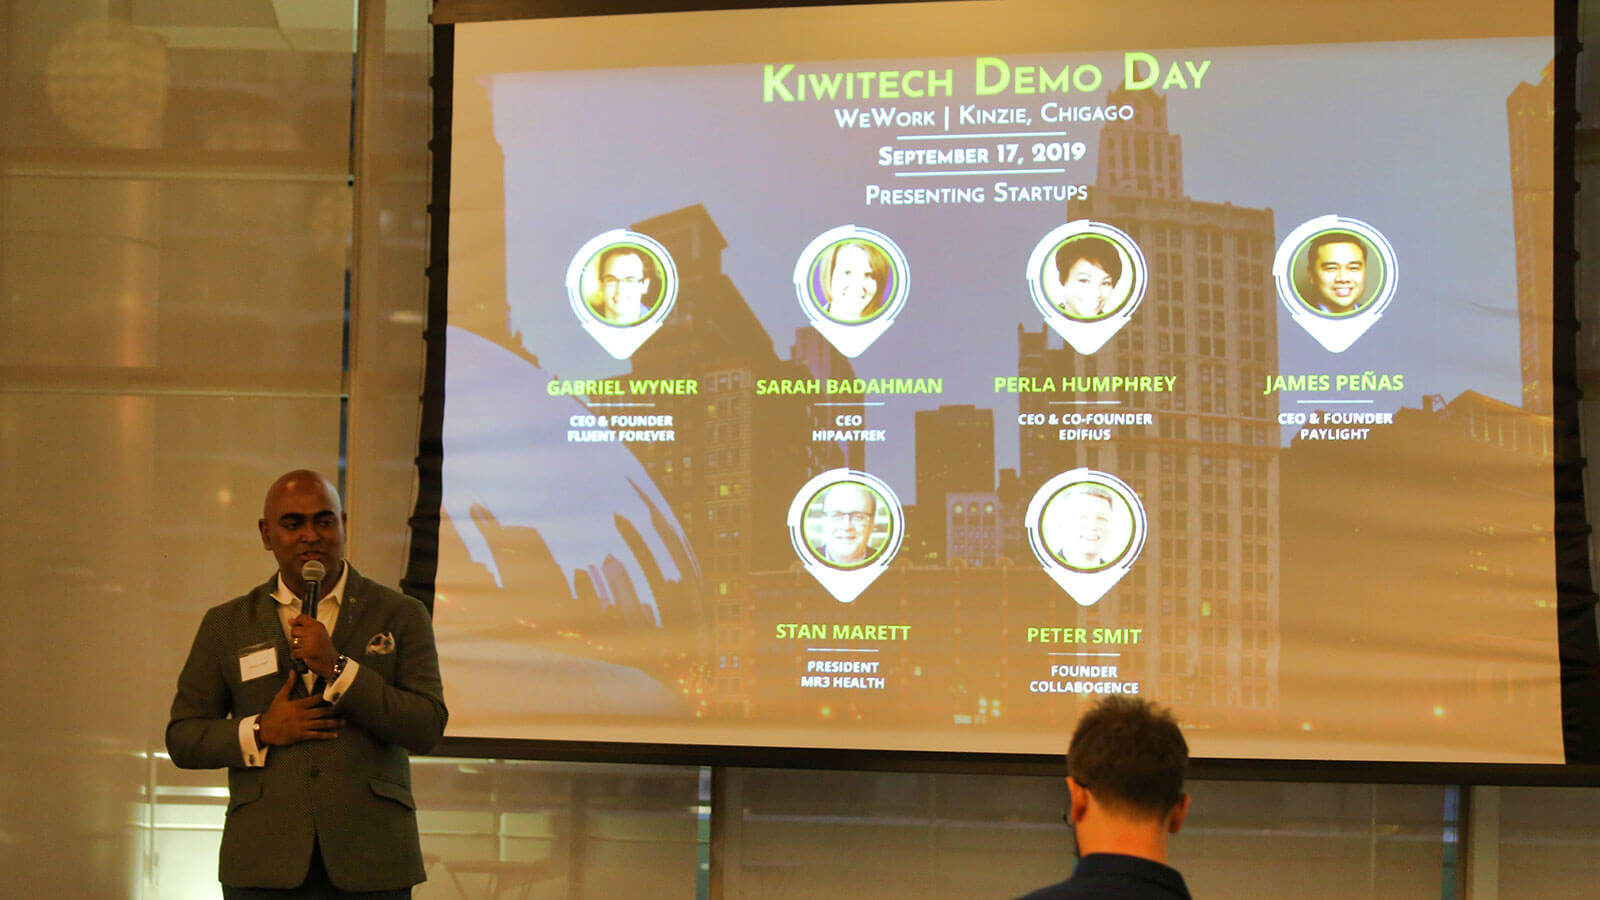 Gallery- Demo Day